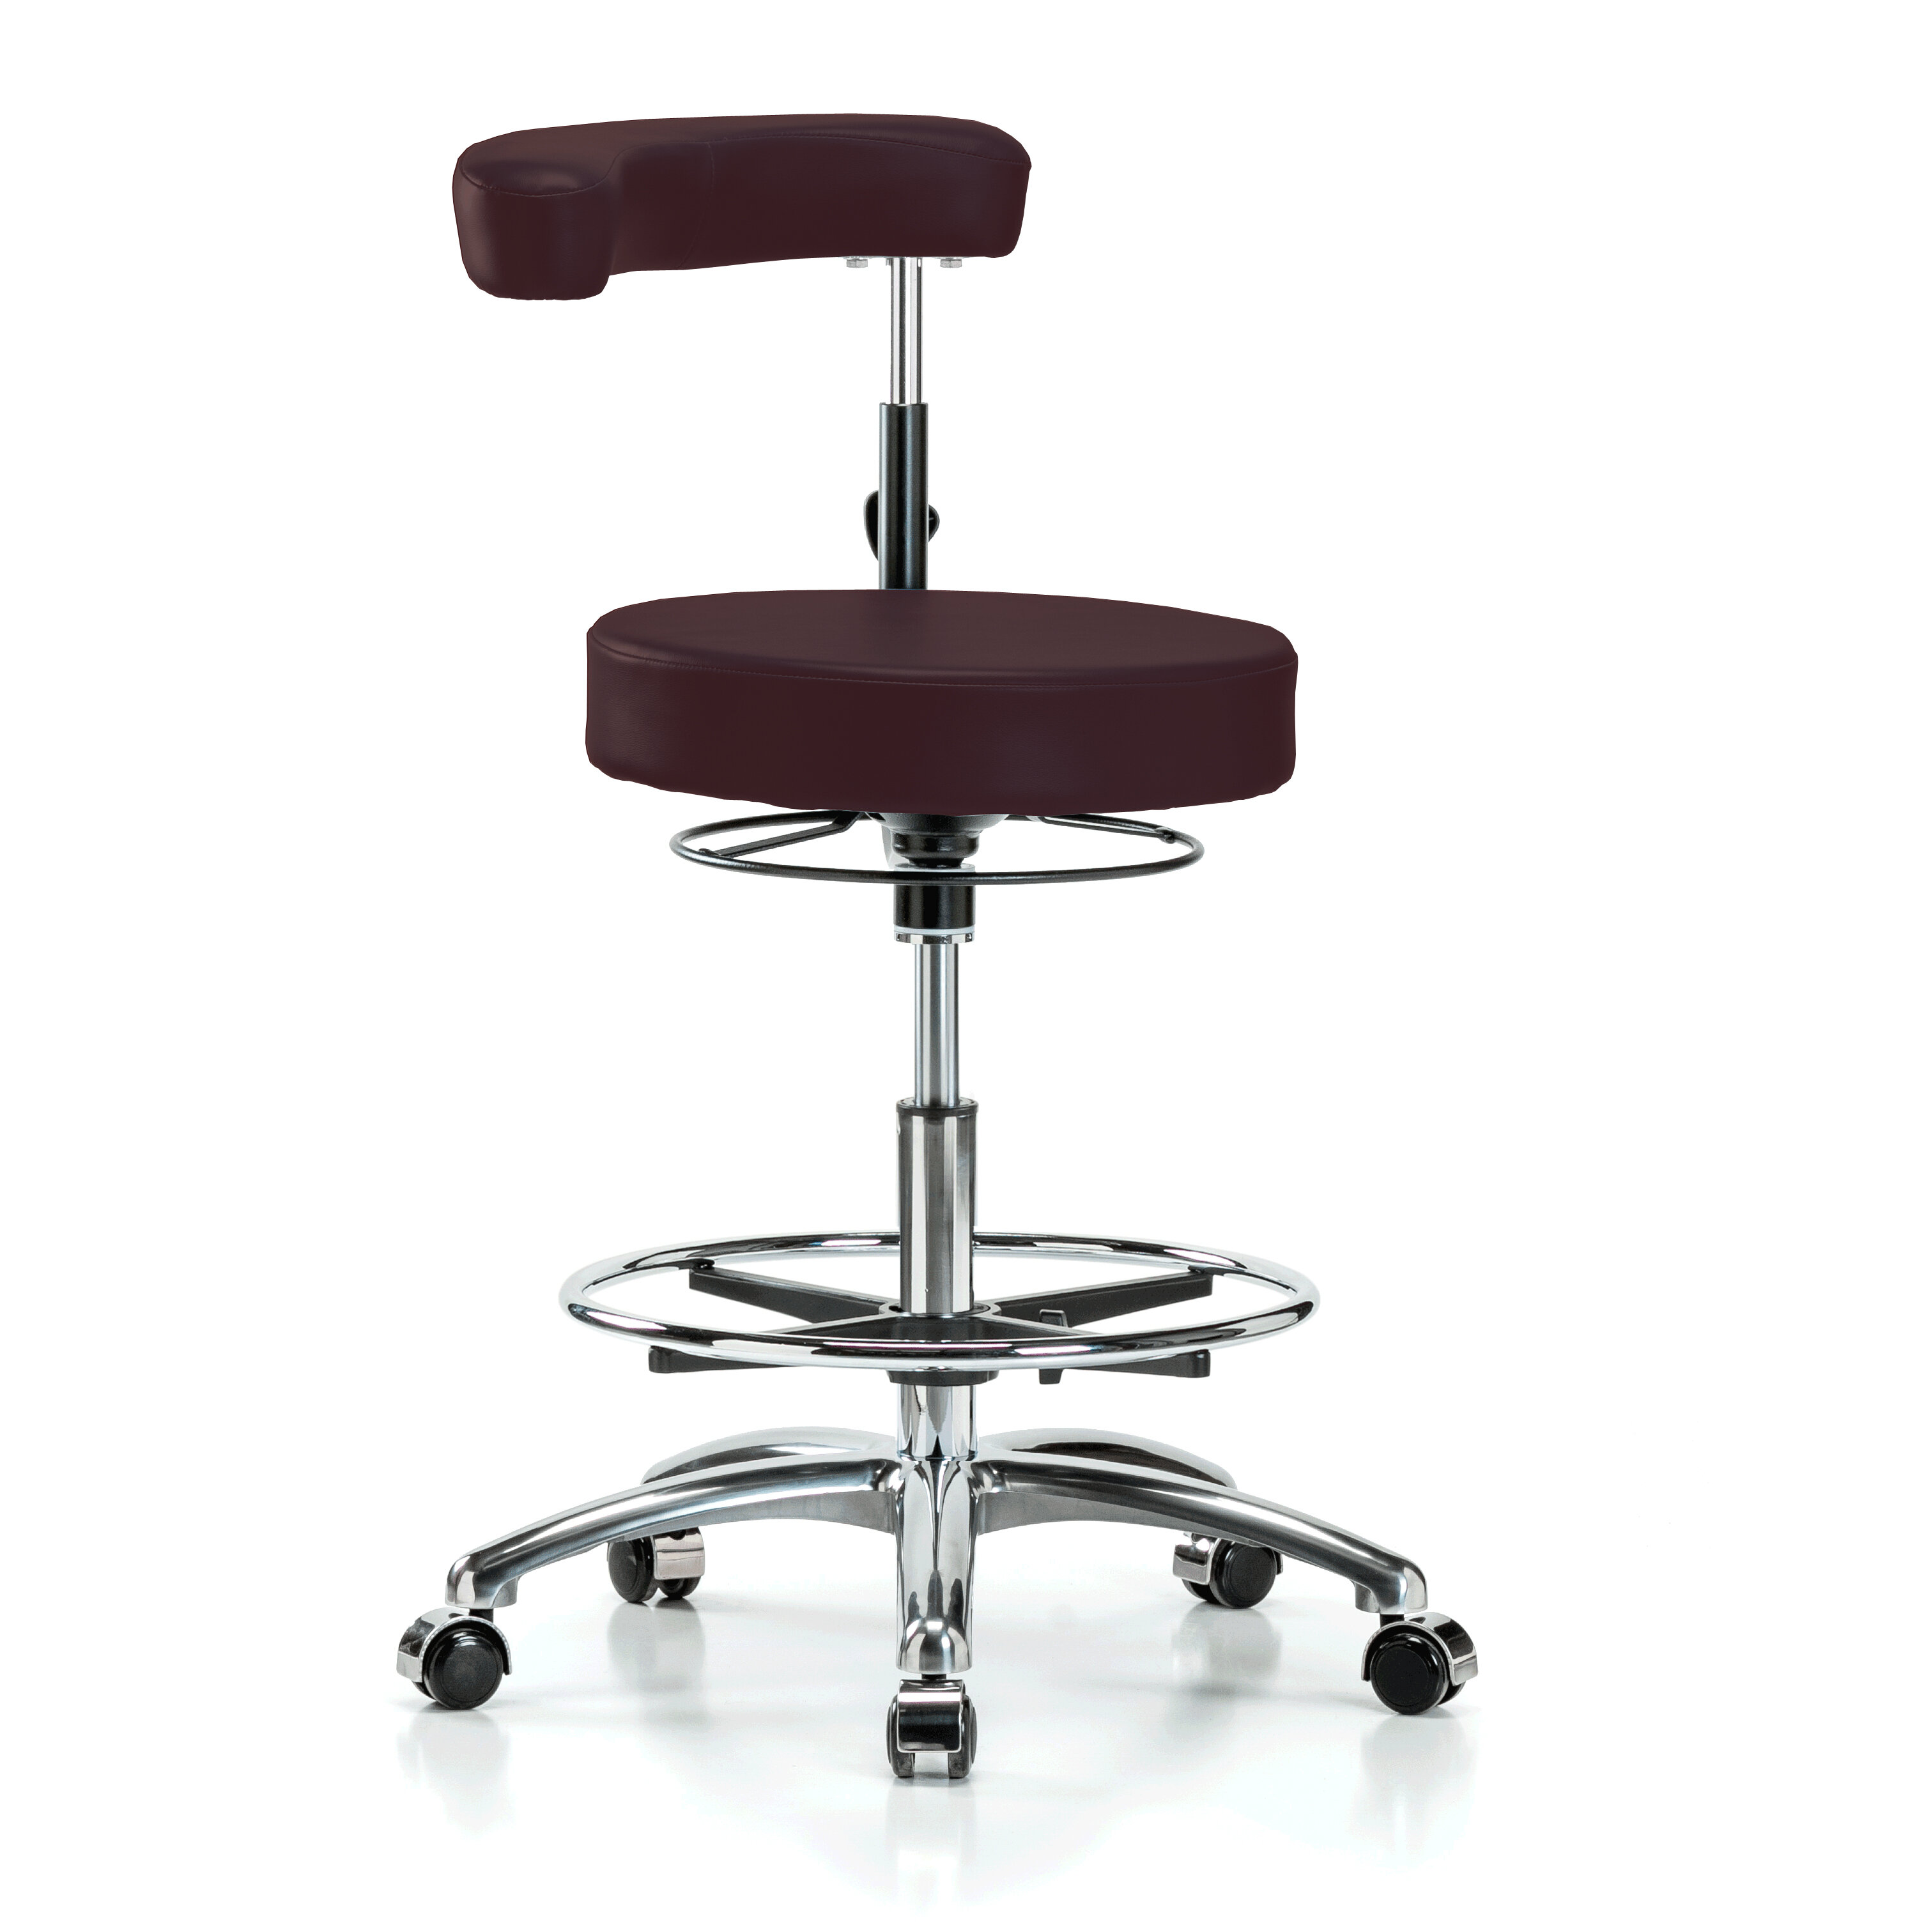 Sensational Height Adjustable Dental Stool With Procedure Arm And Foot Ring Evergreenethics Interior Chair Design Evergreenethicsorg